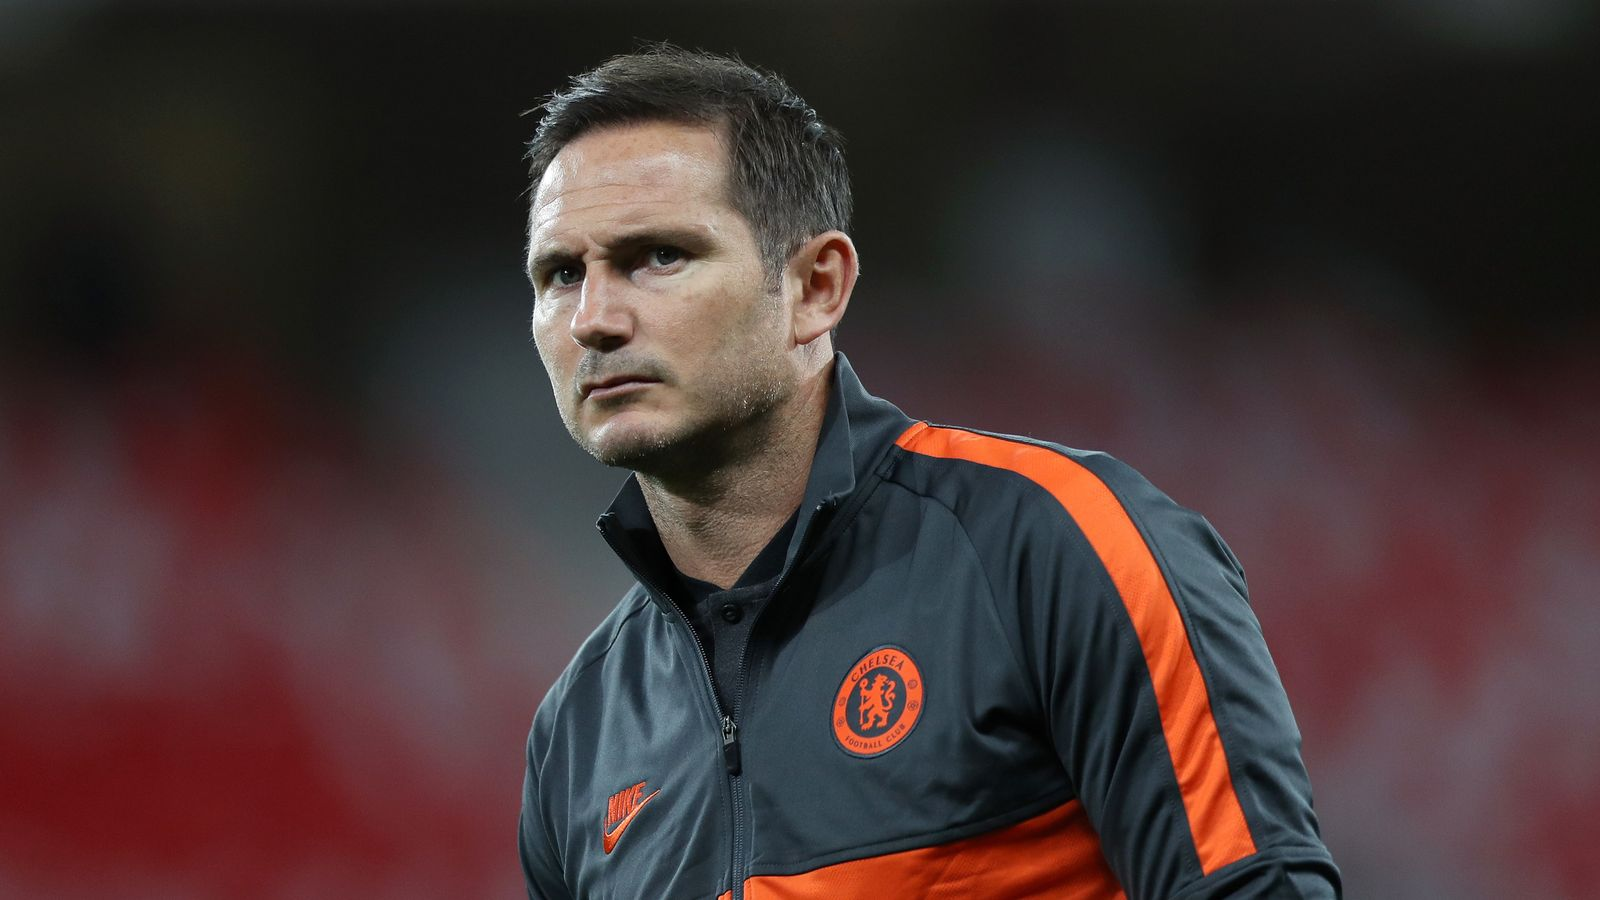 Frank Lampard: Chelsea win will not end Manchester United's Champions League hopes